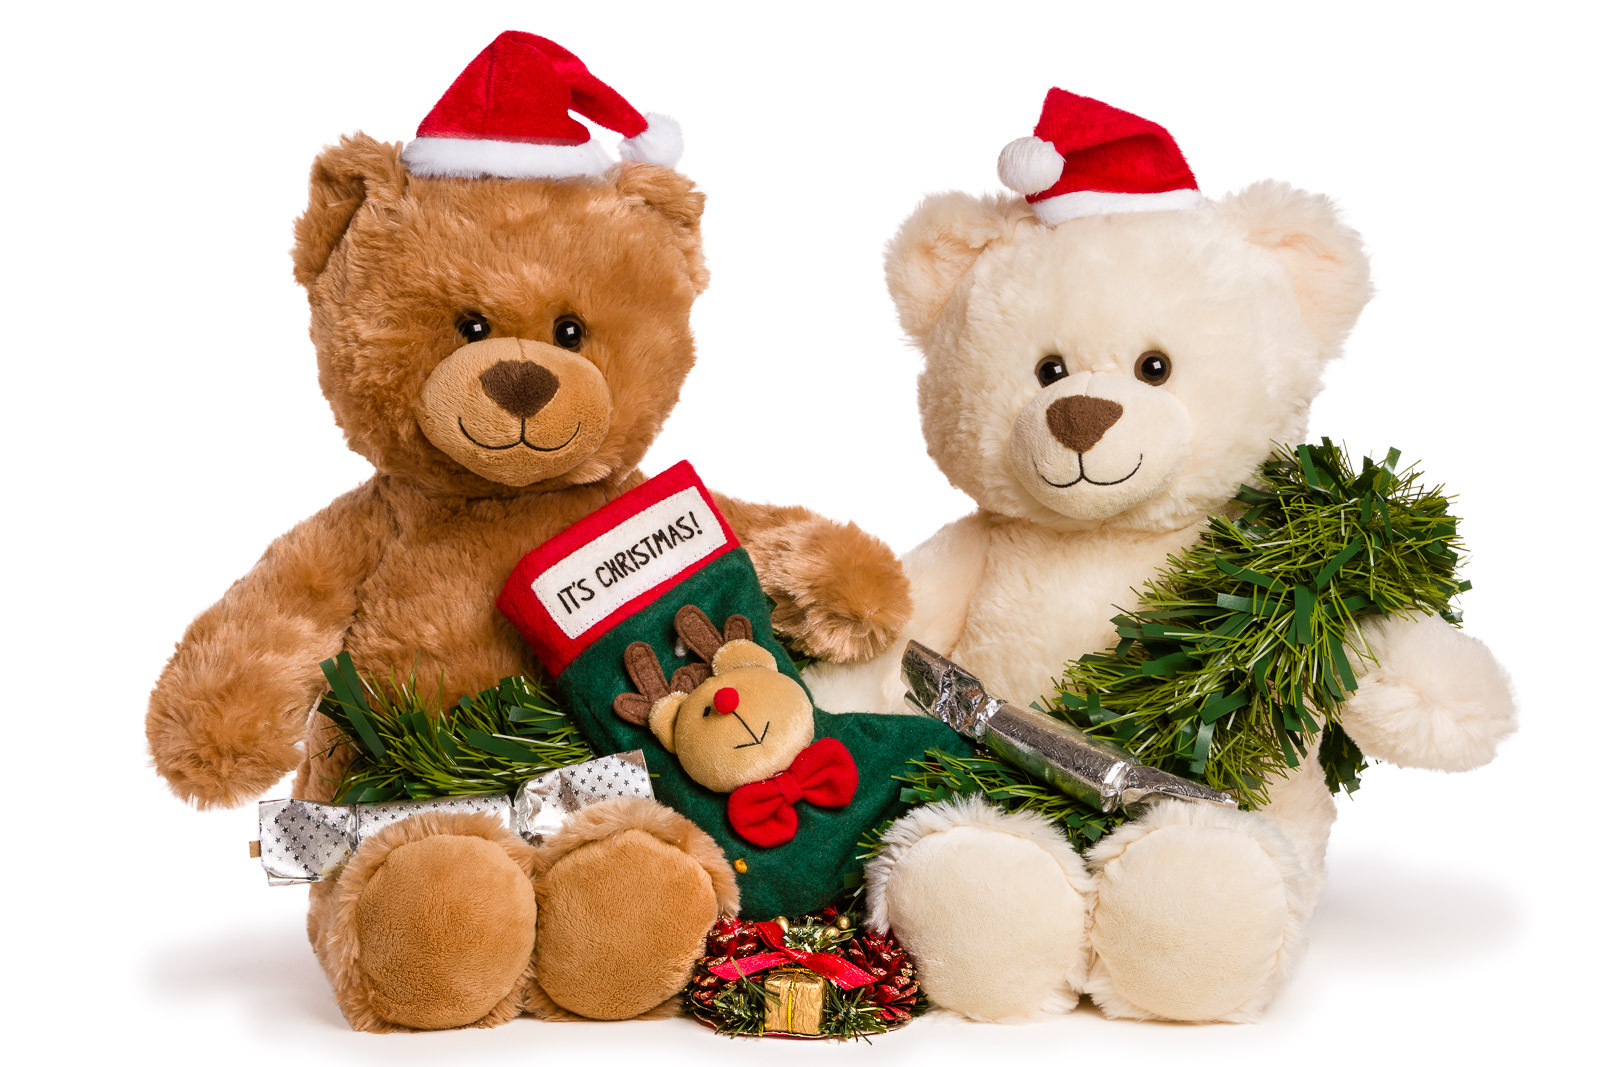 spire healthcare christmas teddy bears on white background